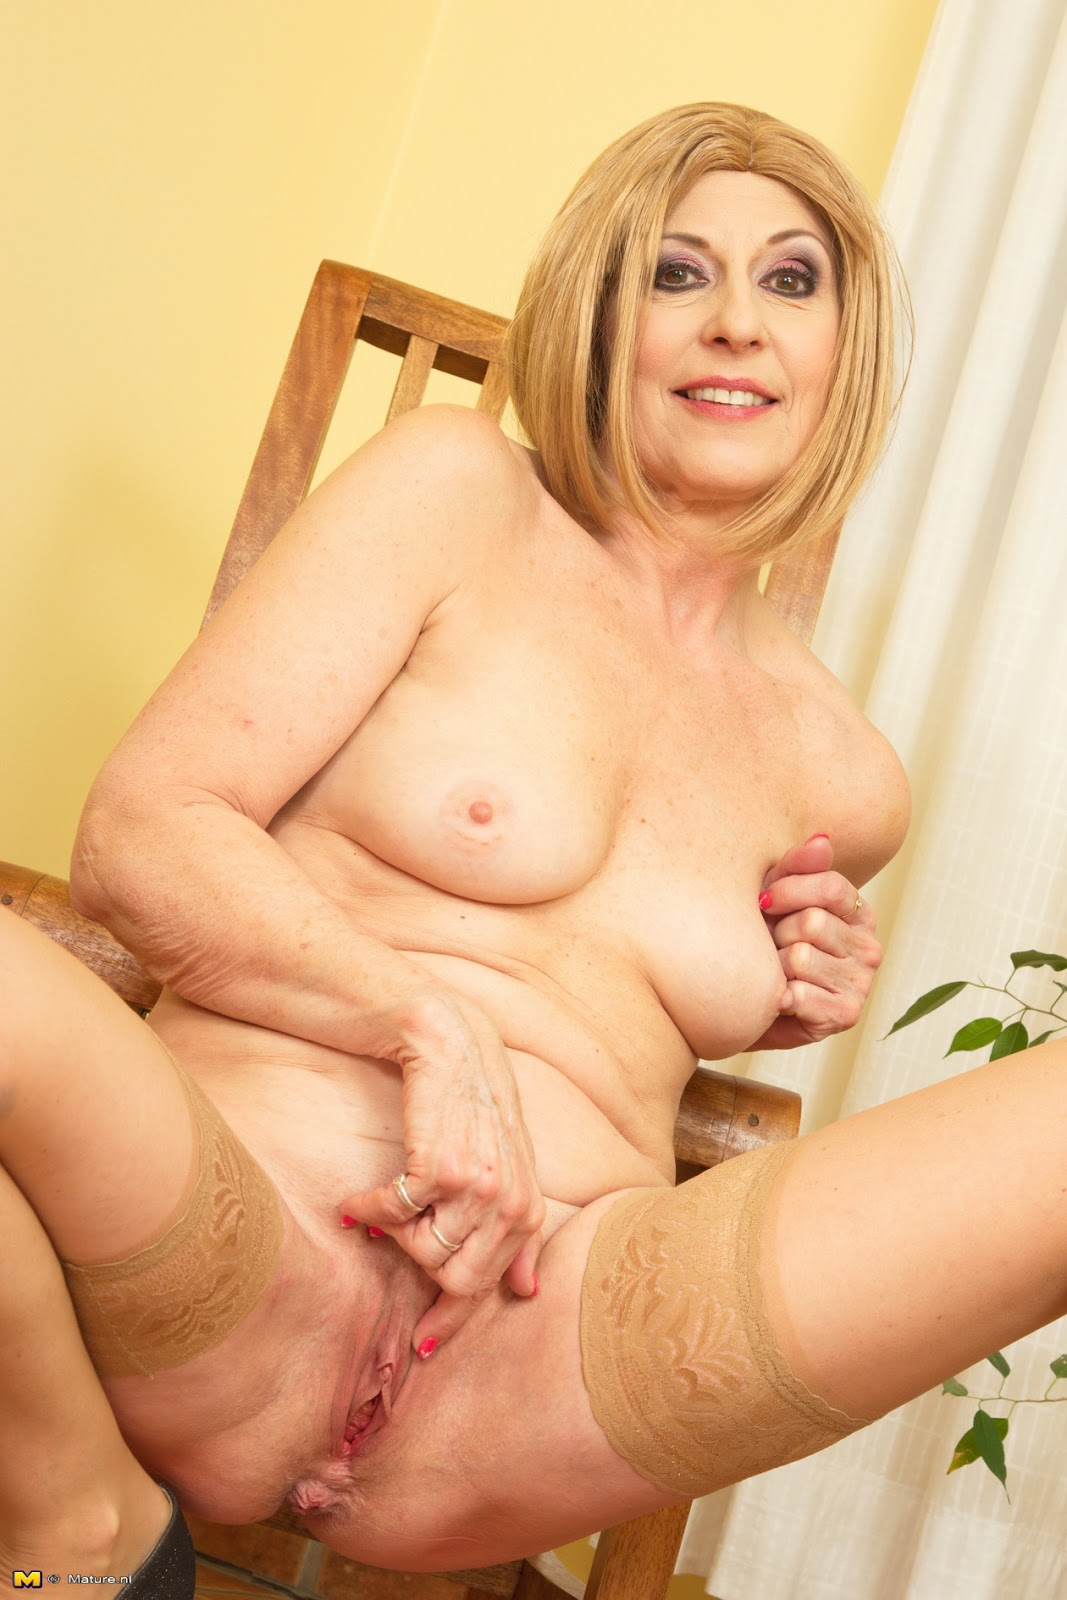 Archive Of Old Women Danny Mature Solo-8078